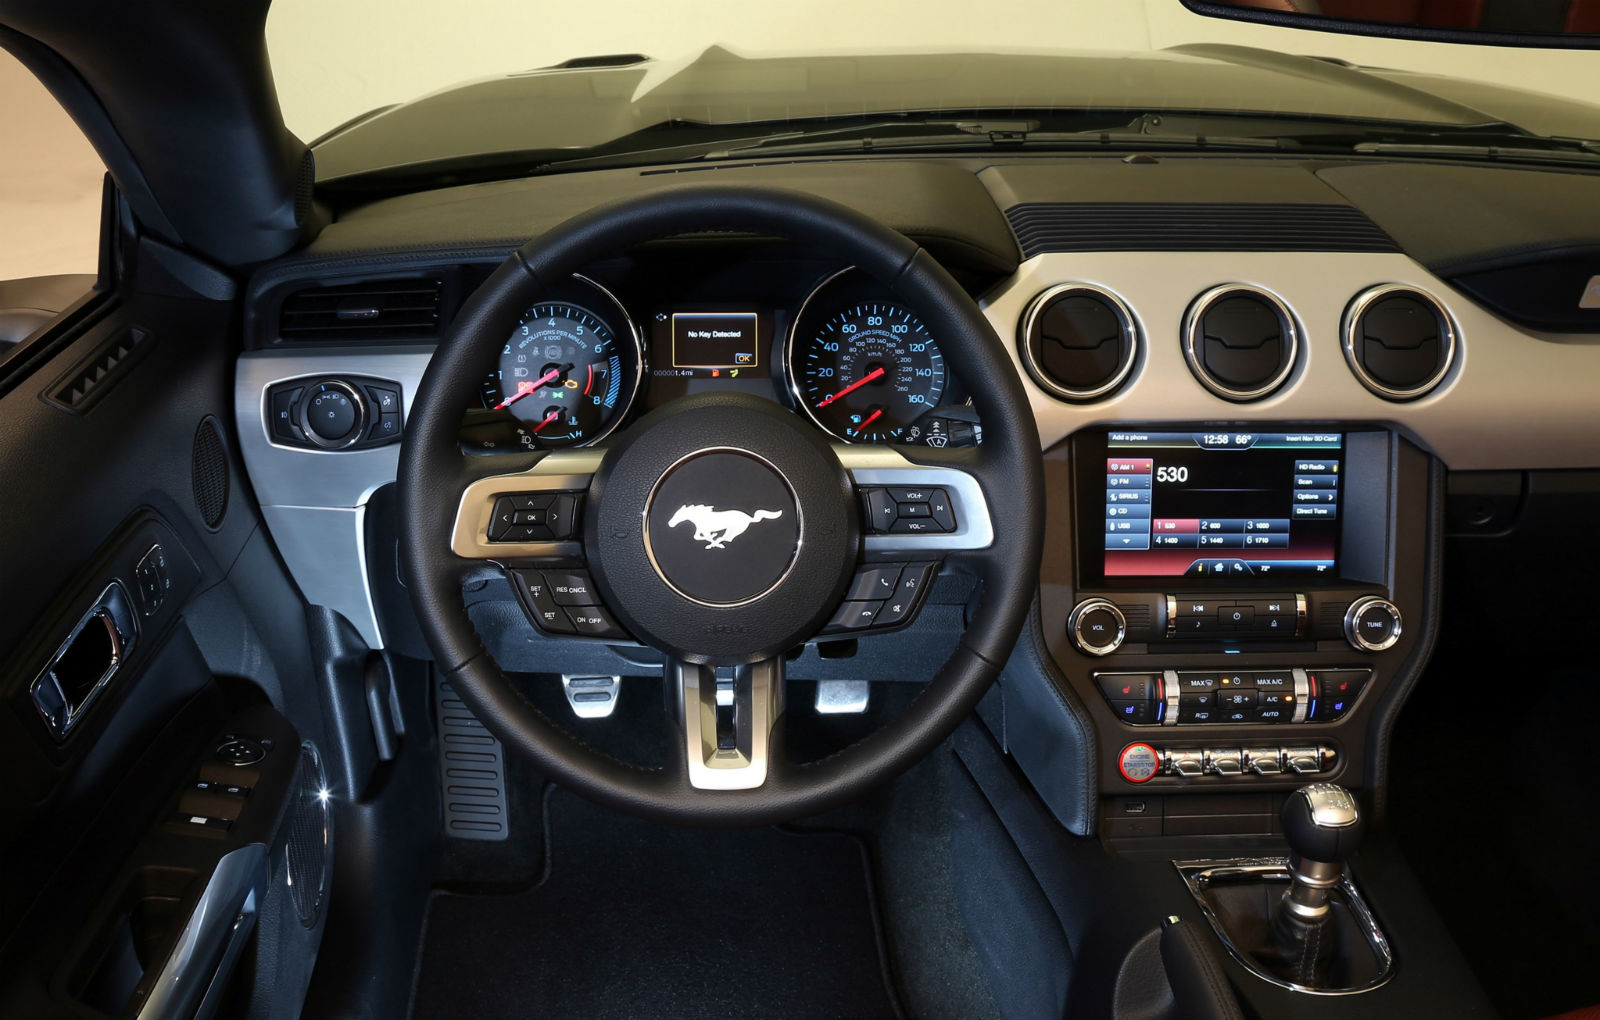 2015 ford mustang black wallpaper 2015 ford mustang gt interior pict 1600x1020